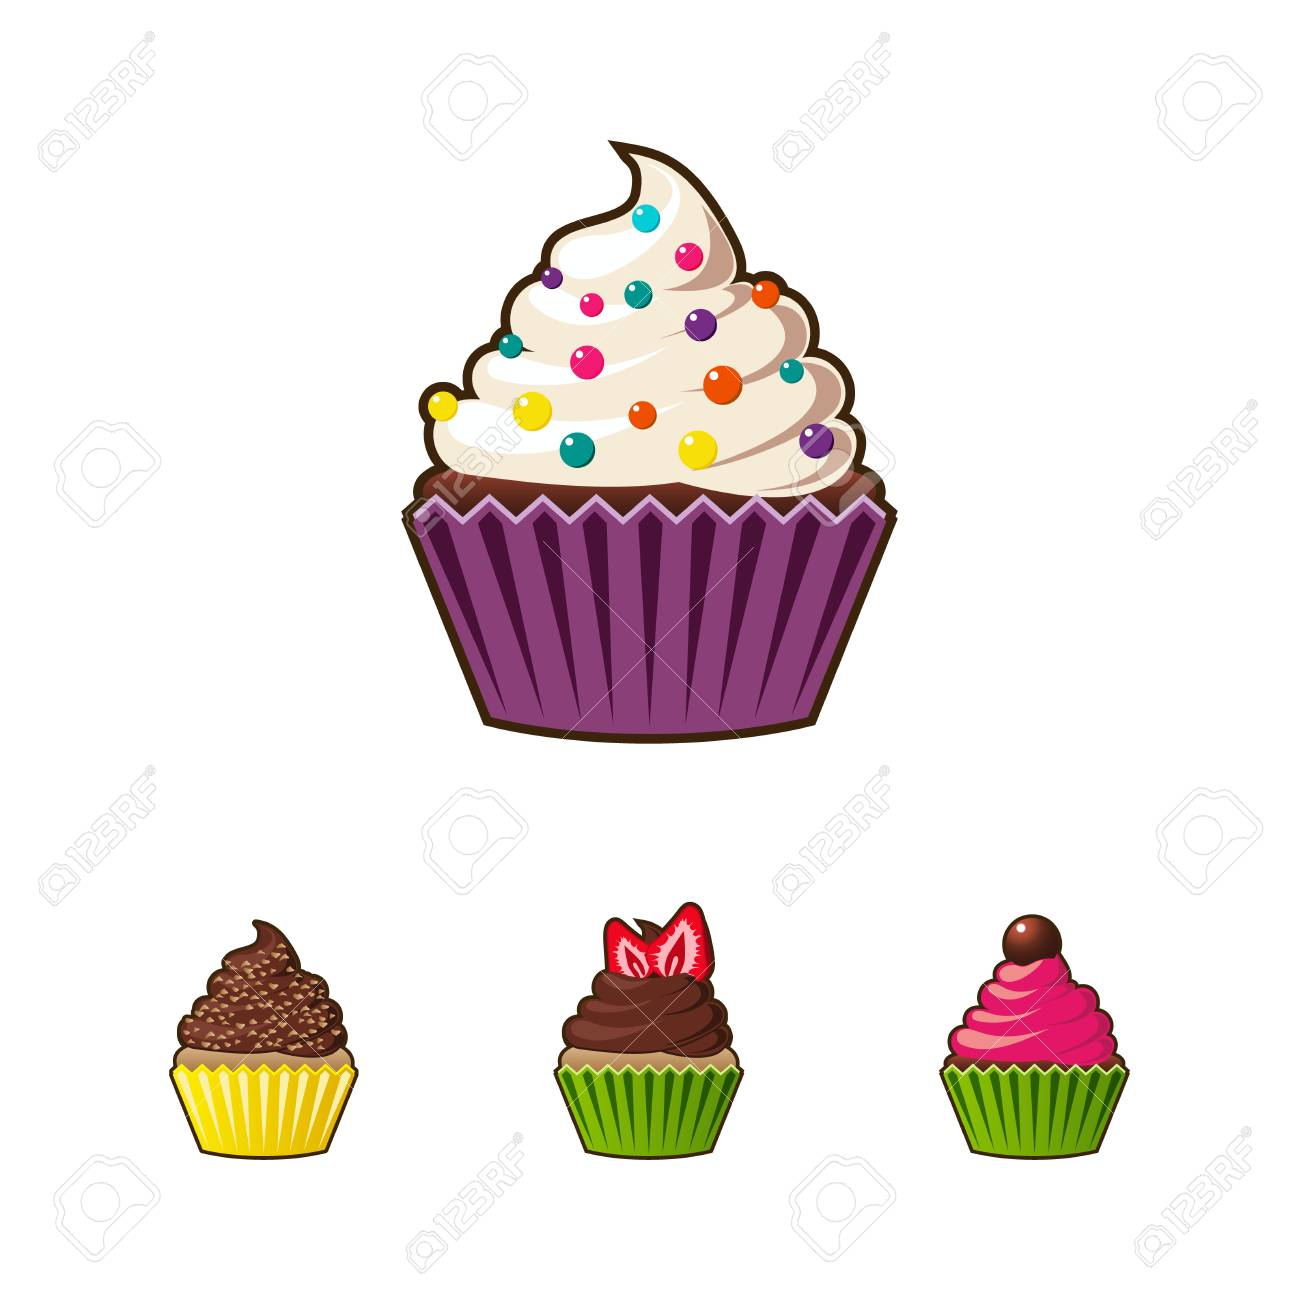 Cupcakes And Muffins Cartoon Icon Royalty Free Cliparts Vectors